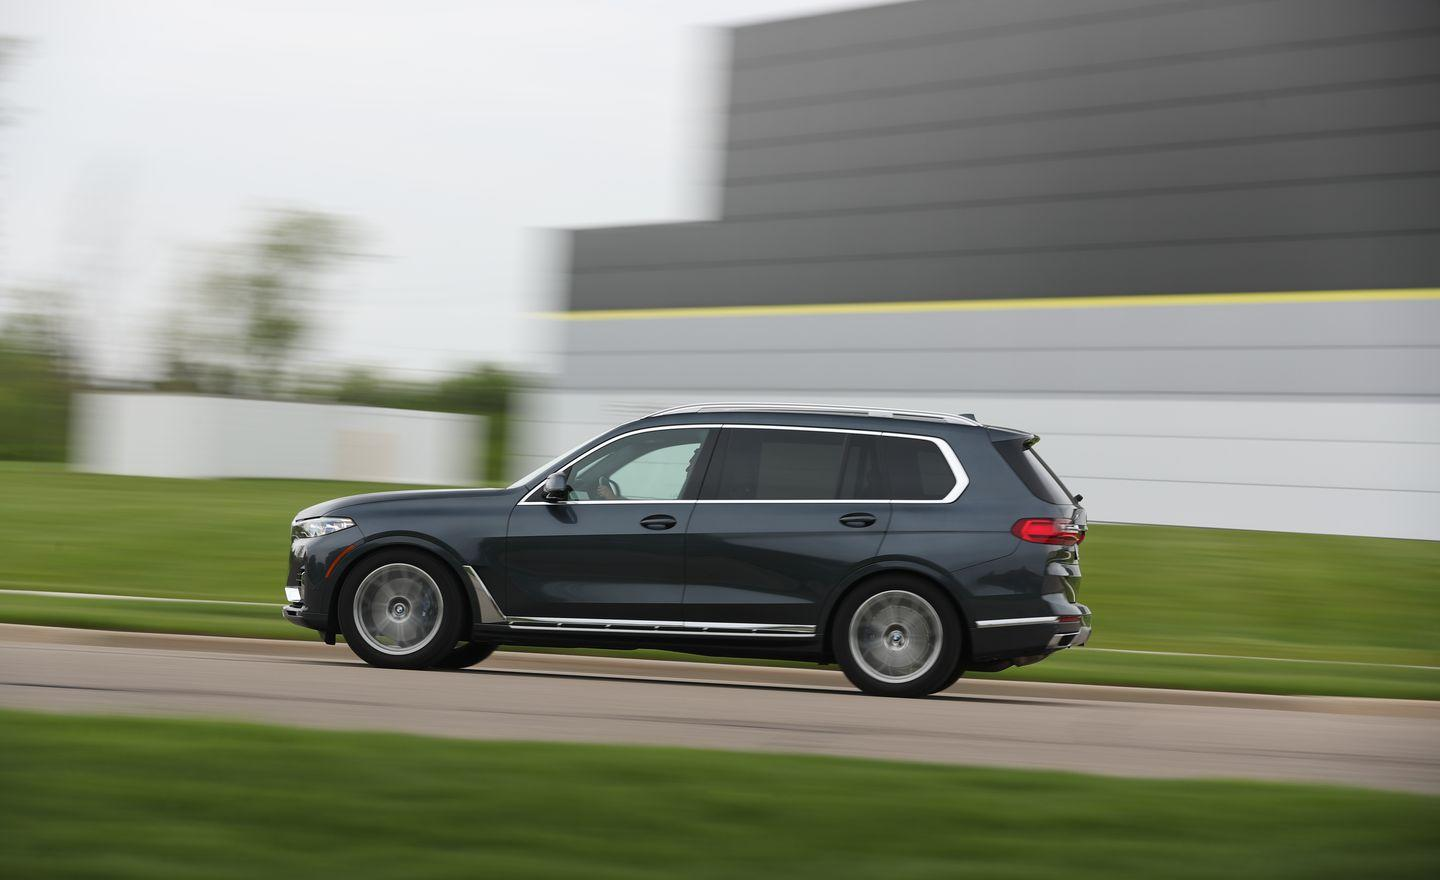 <p>The X7 rides like a taller and squishier 7-series. The Sport mode tightens the standard adaptive dampers and reduces much of the excess body roll, and it feels like it should be base setting.</p>